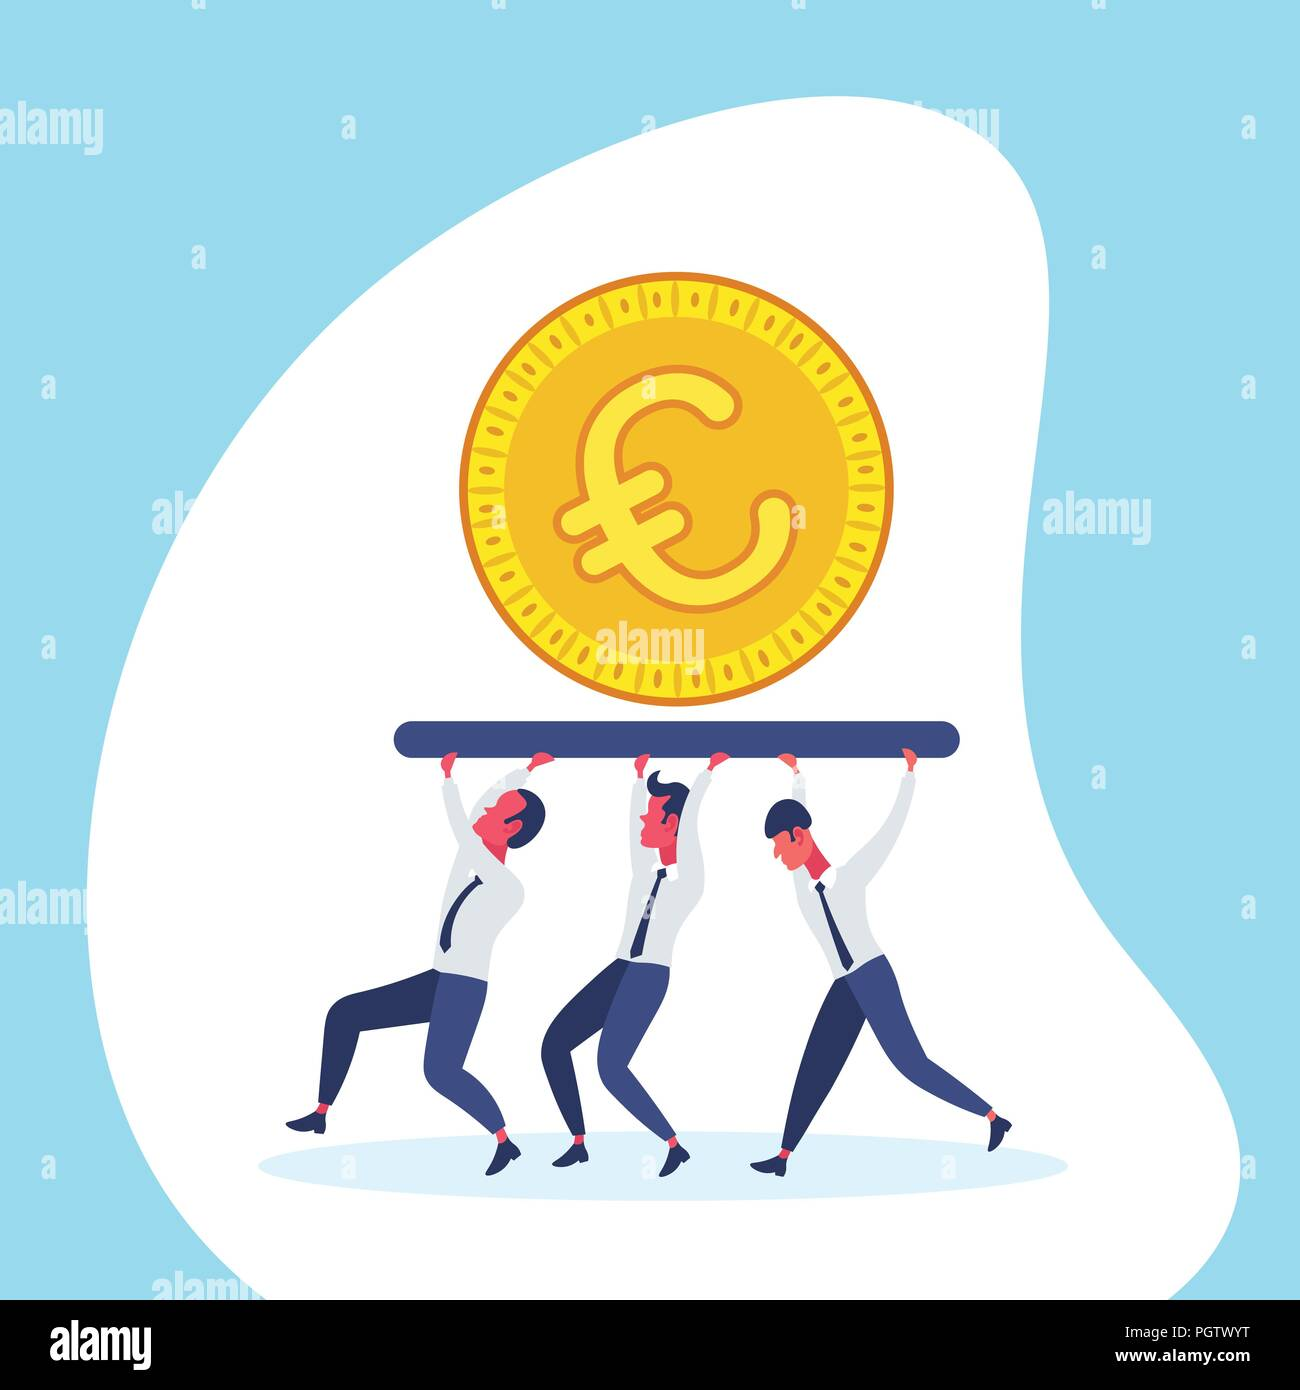 Business People Team Carry Golden Euro Coin Money Wealth Growth